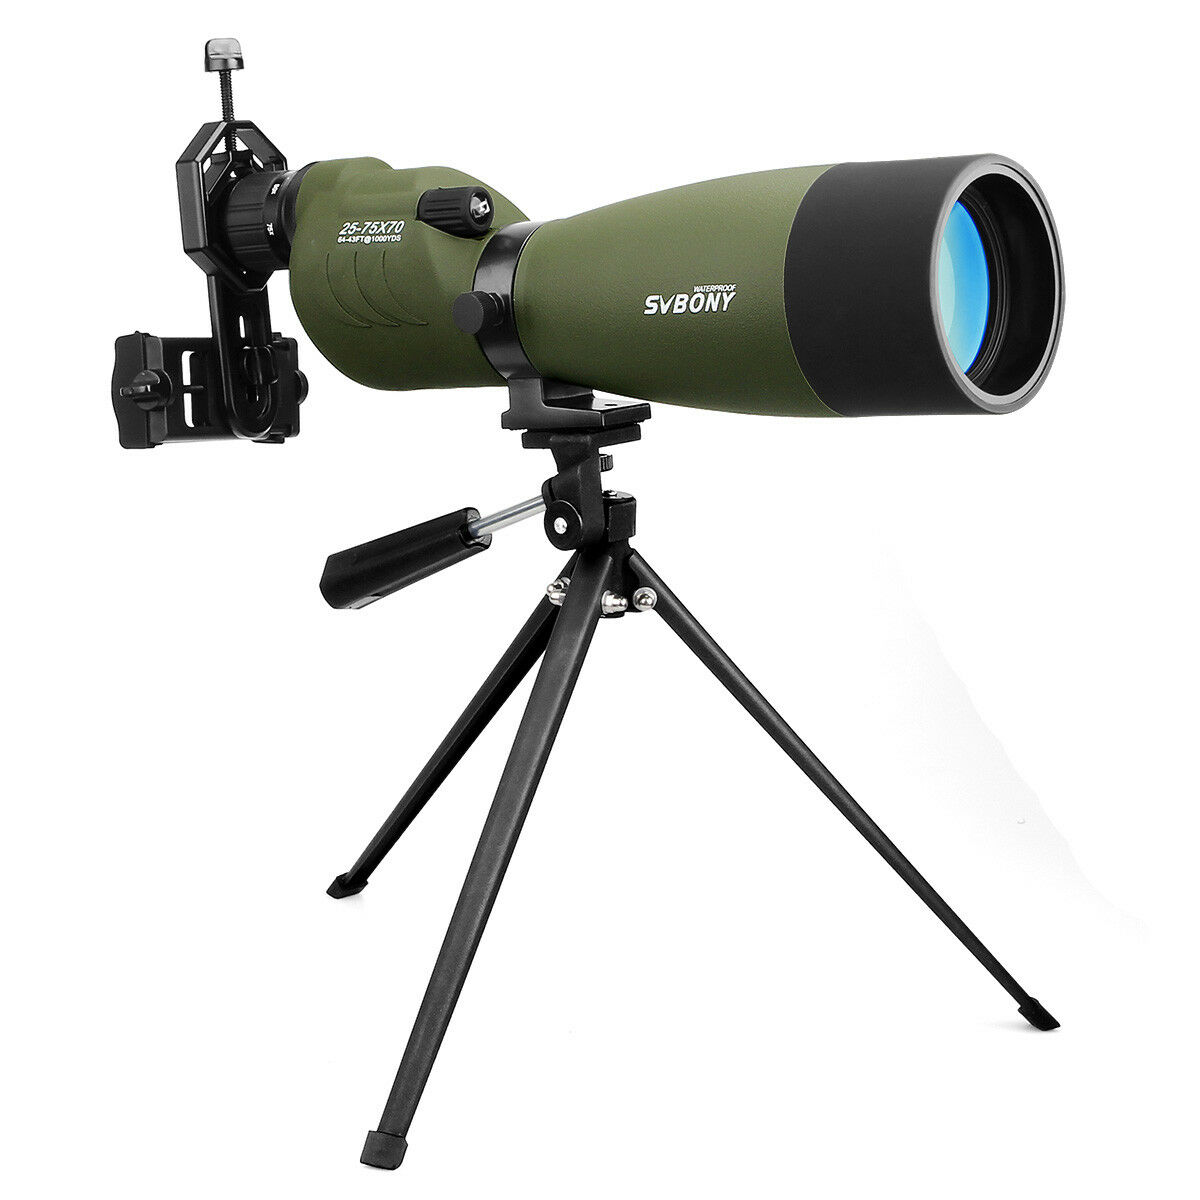 Svbony 25-75x 70mm Waterproof Straight Spotting Scopes for Hunting w/ Carry Case